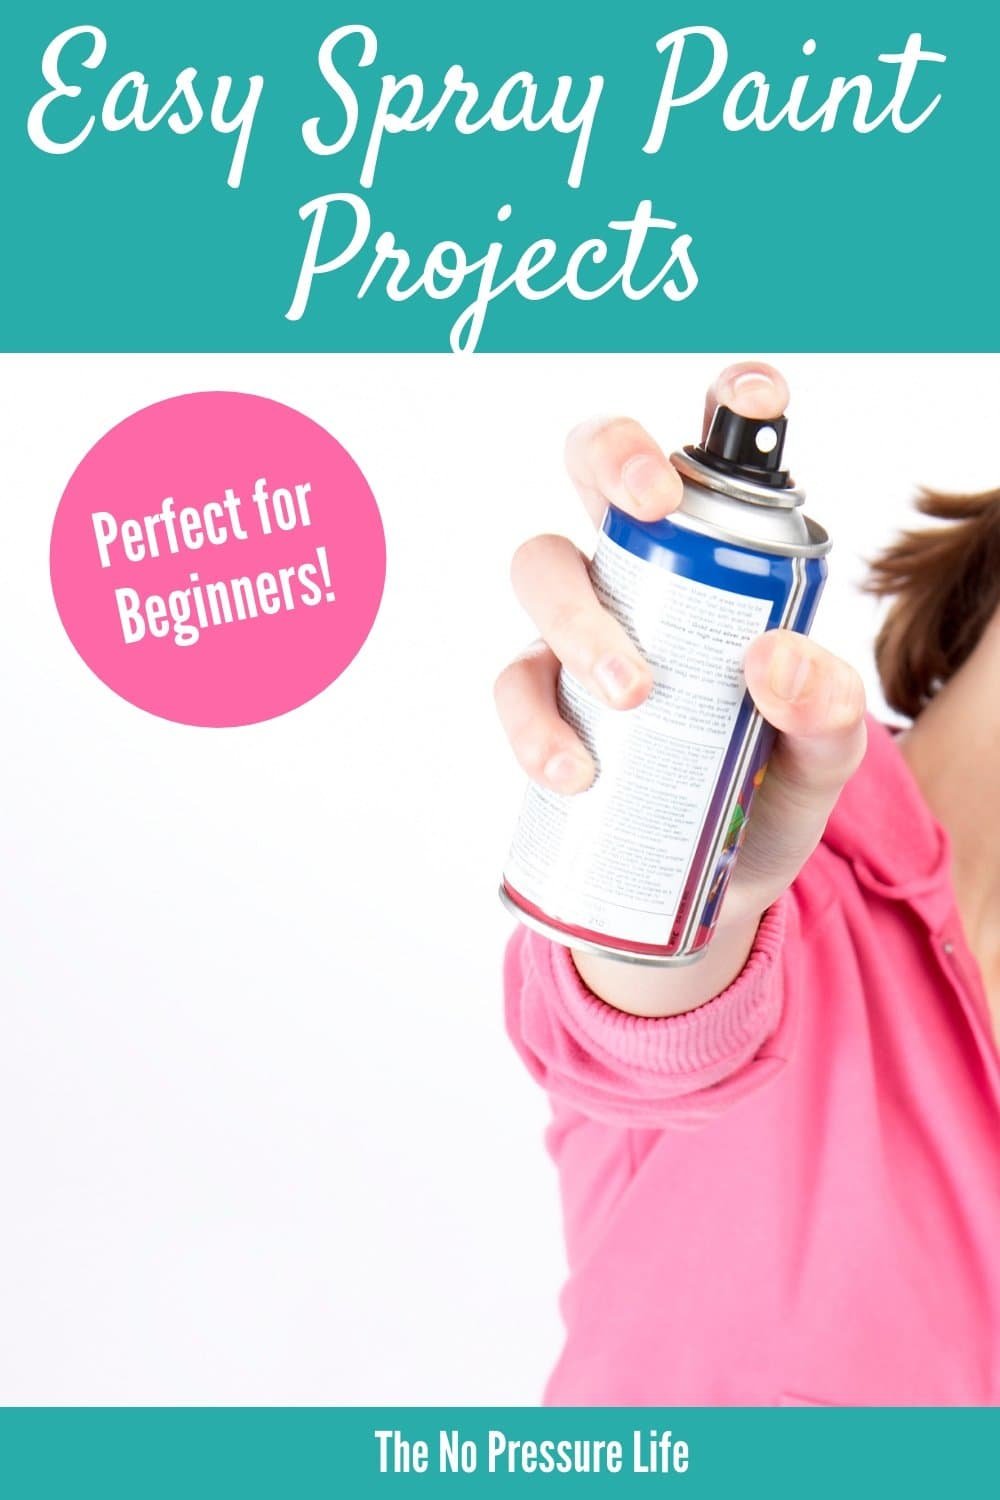 DIY spray paint ideas and weekend projects